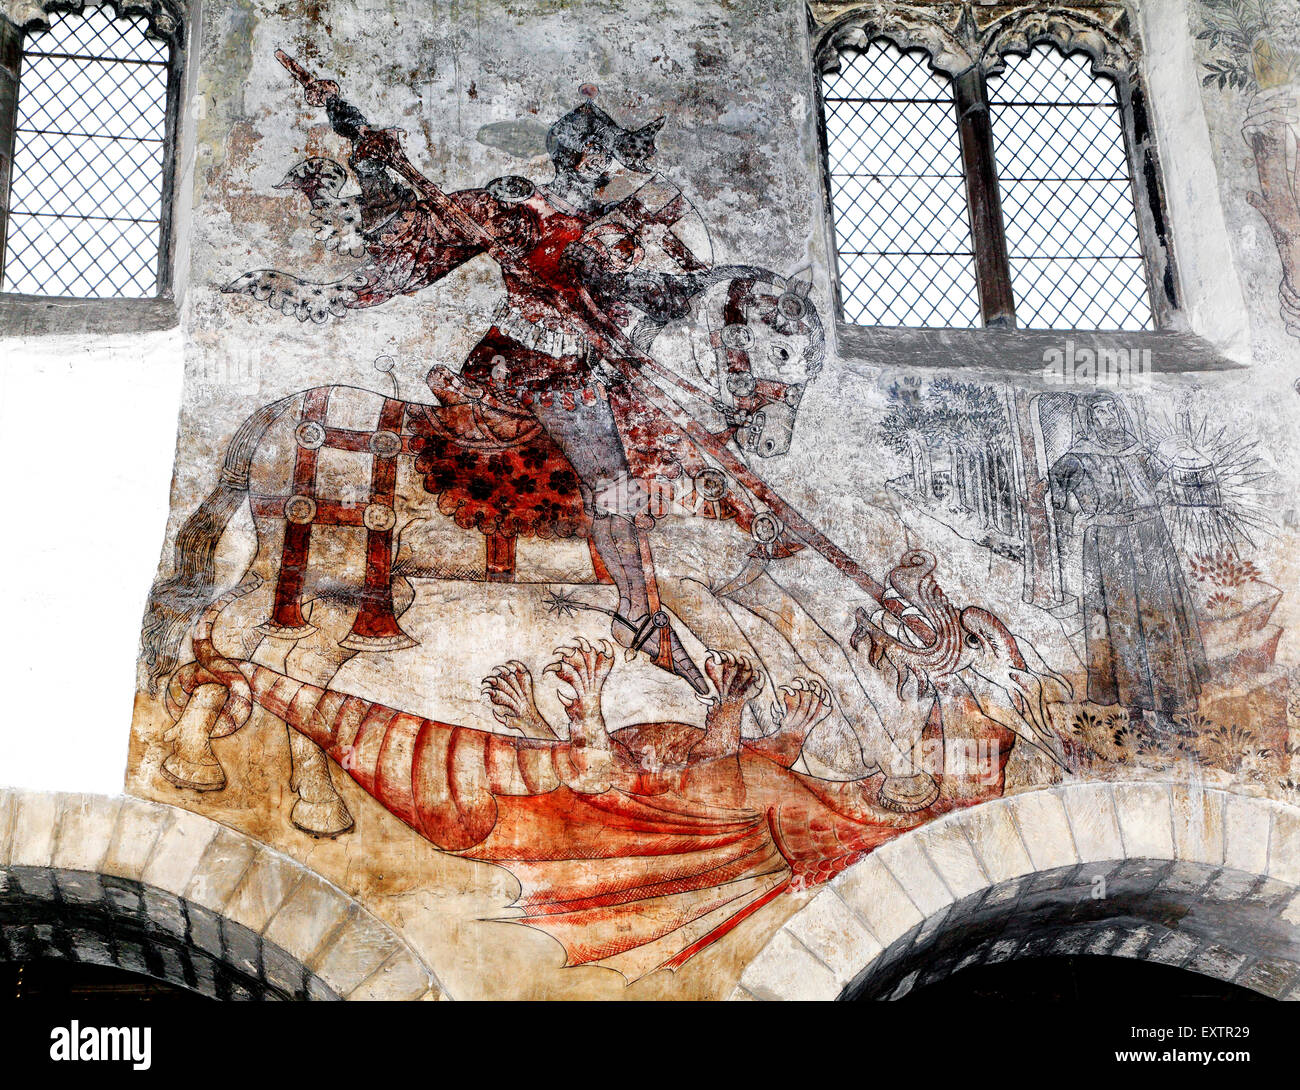 St. George and the Dragon, medieval wall painting, Pickering, Yorkshire England UK saints saint paintings - Stock Image